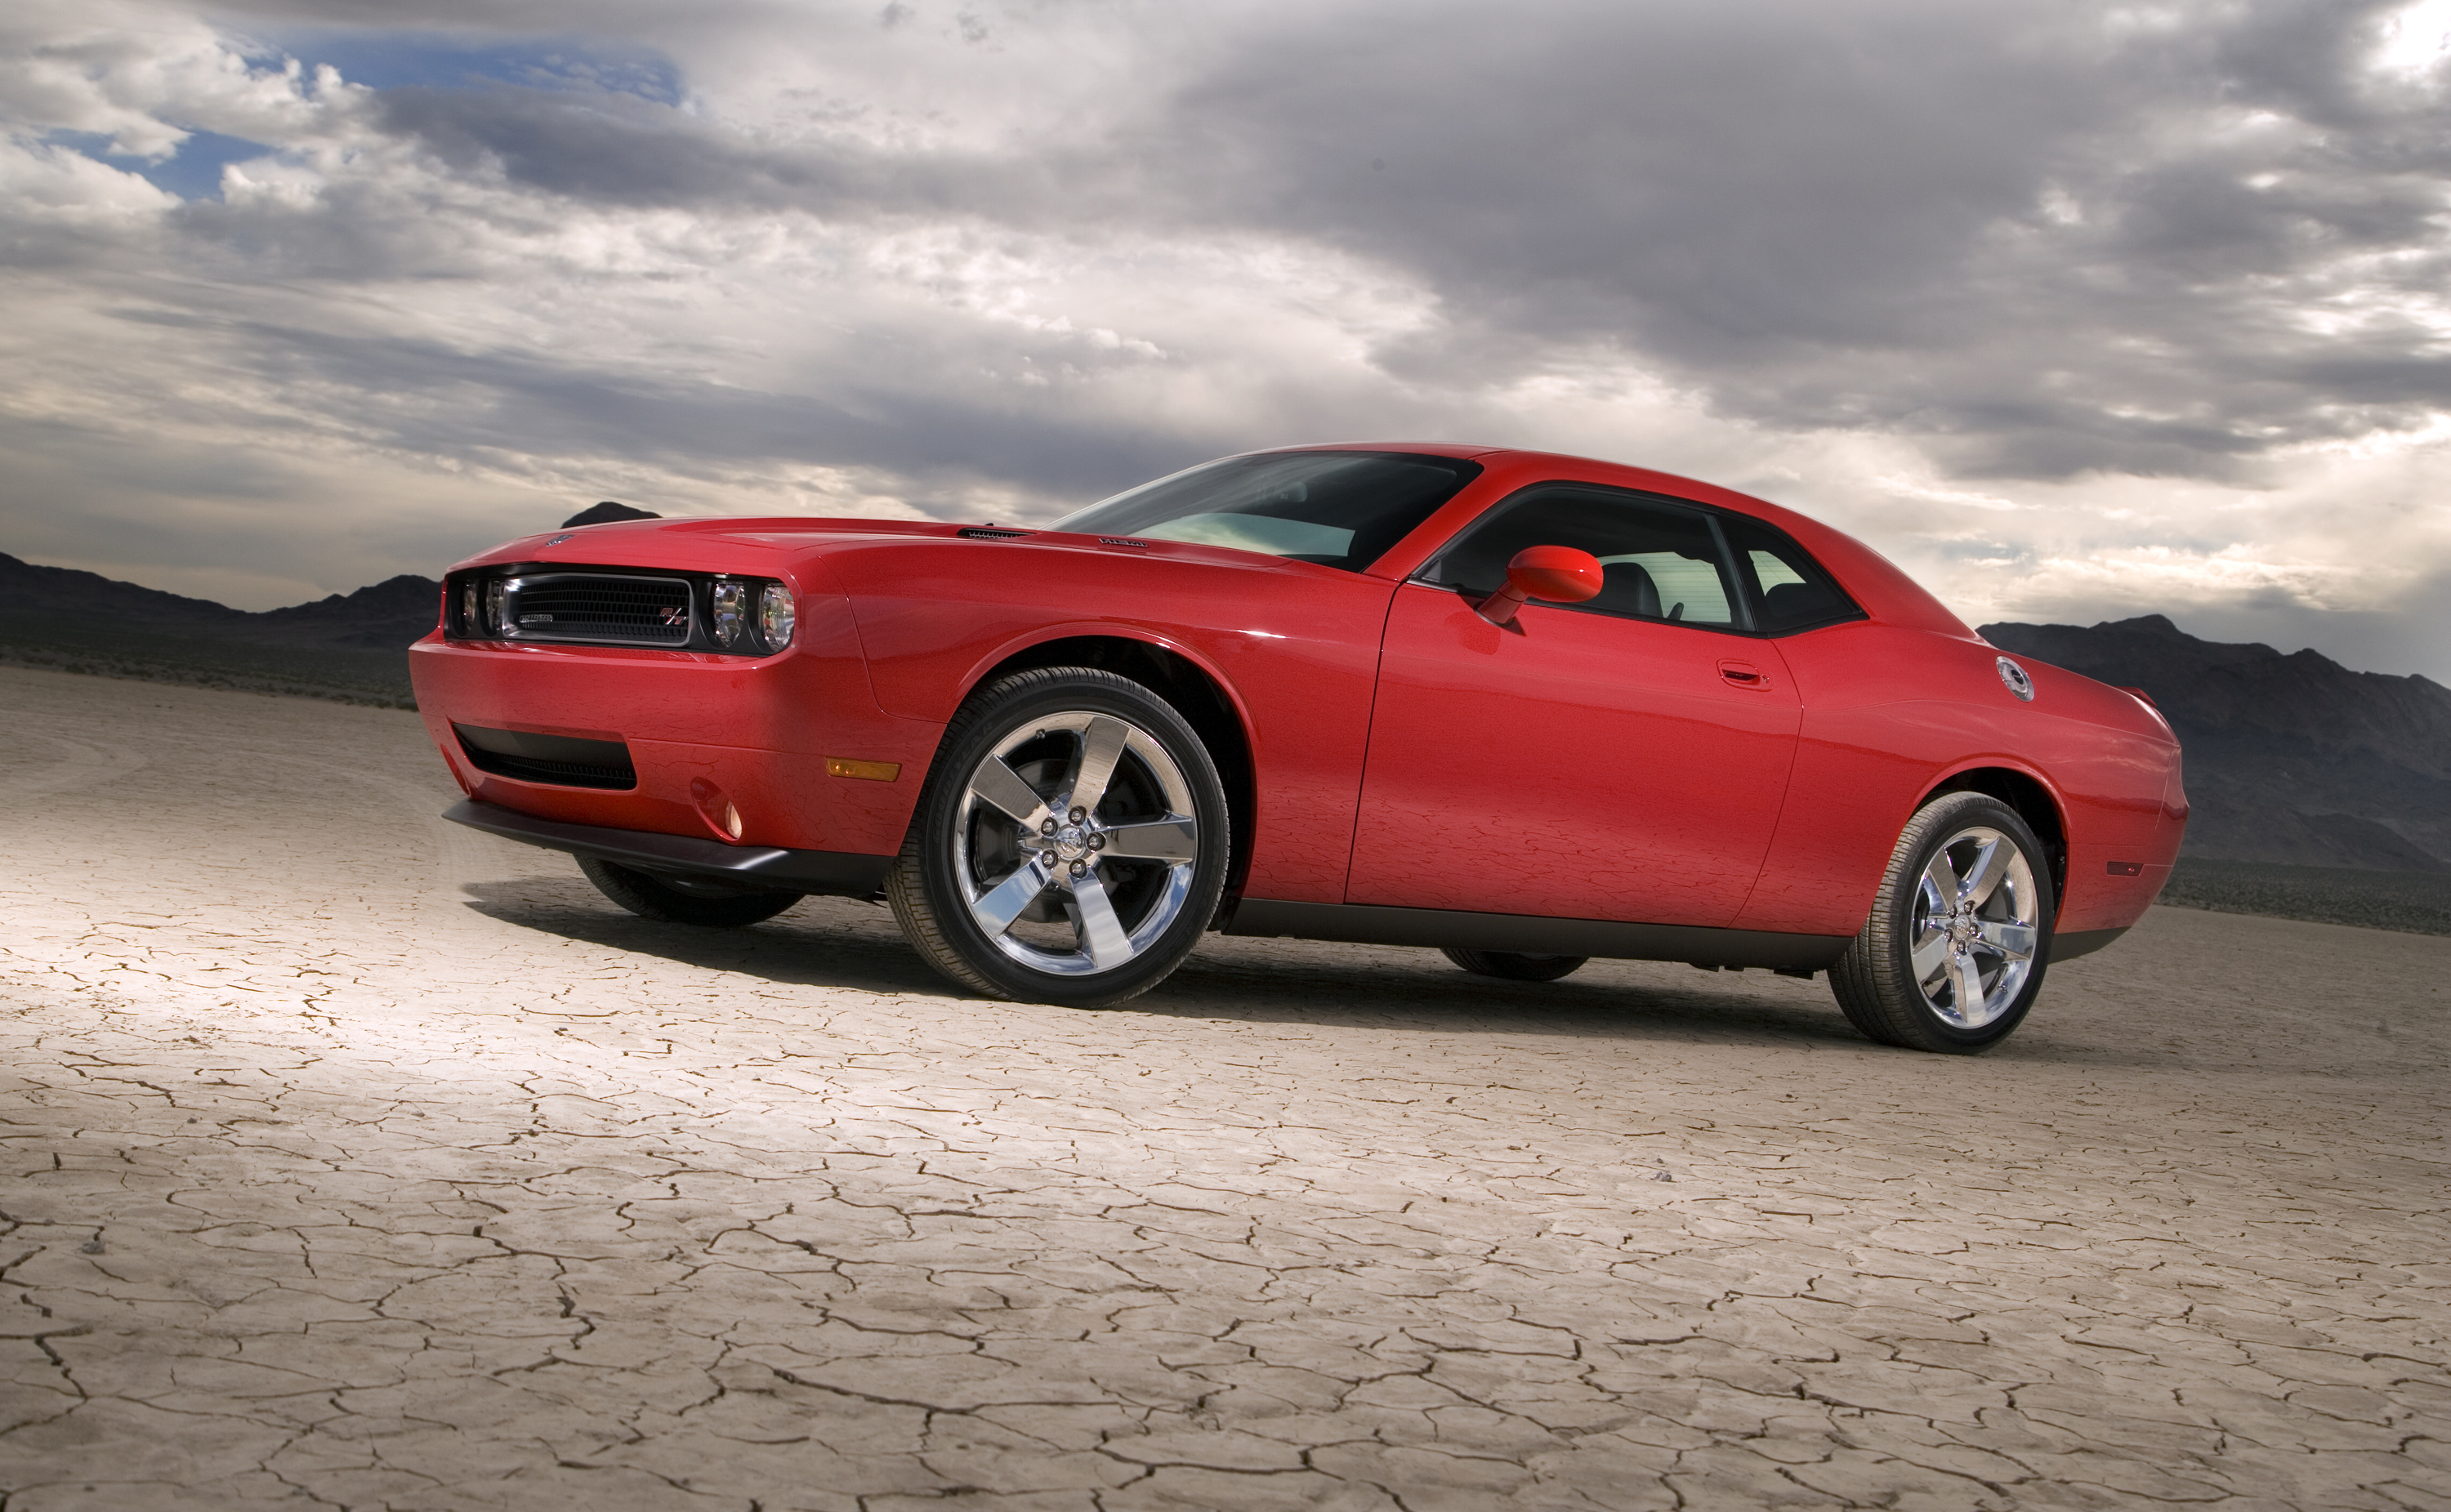 American muscle cars, trucks and motorcycles presented by models